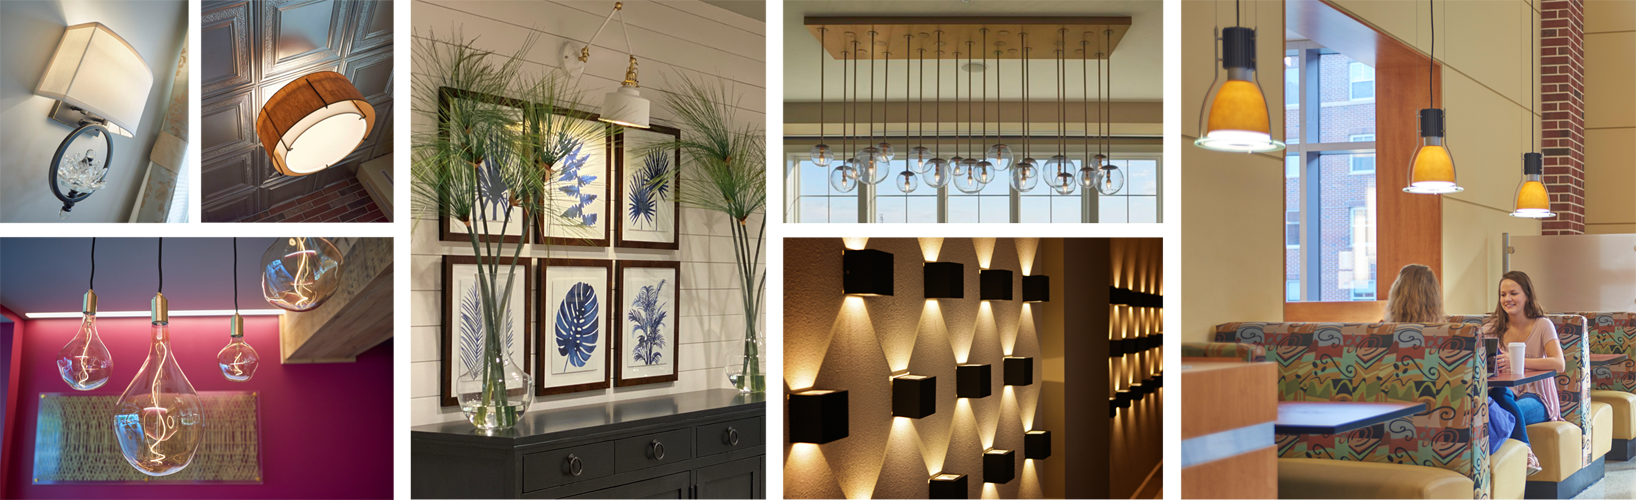 collage of various interior lighting samples